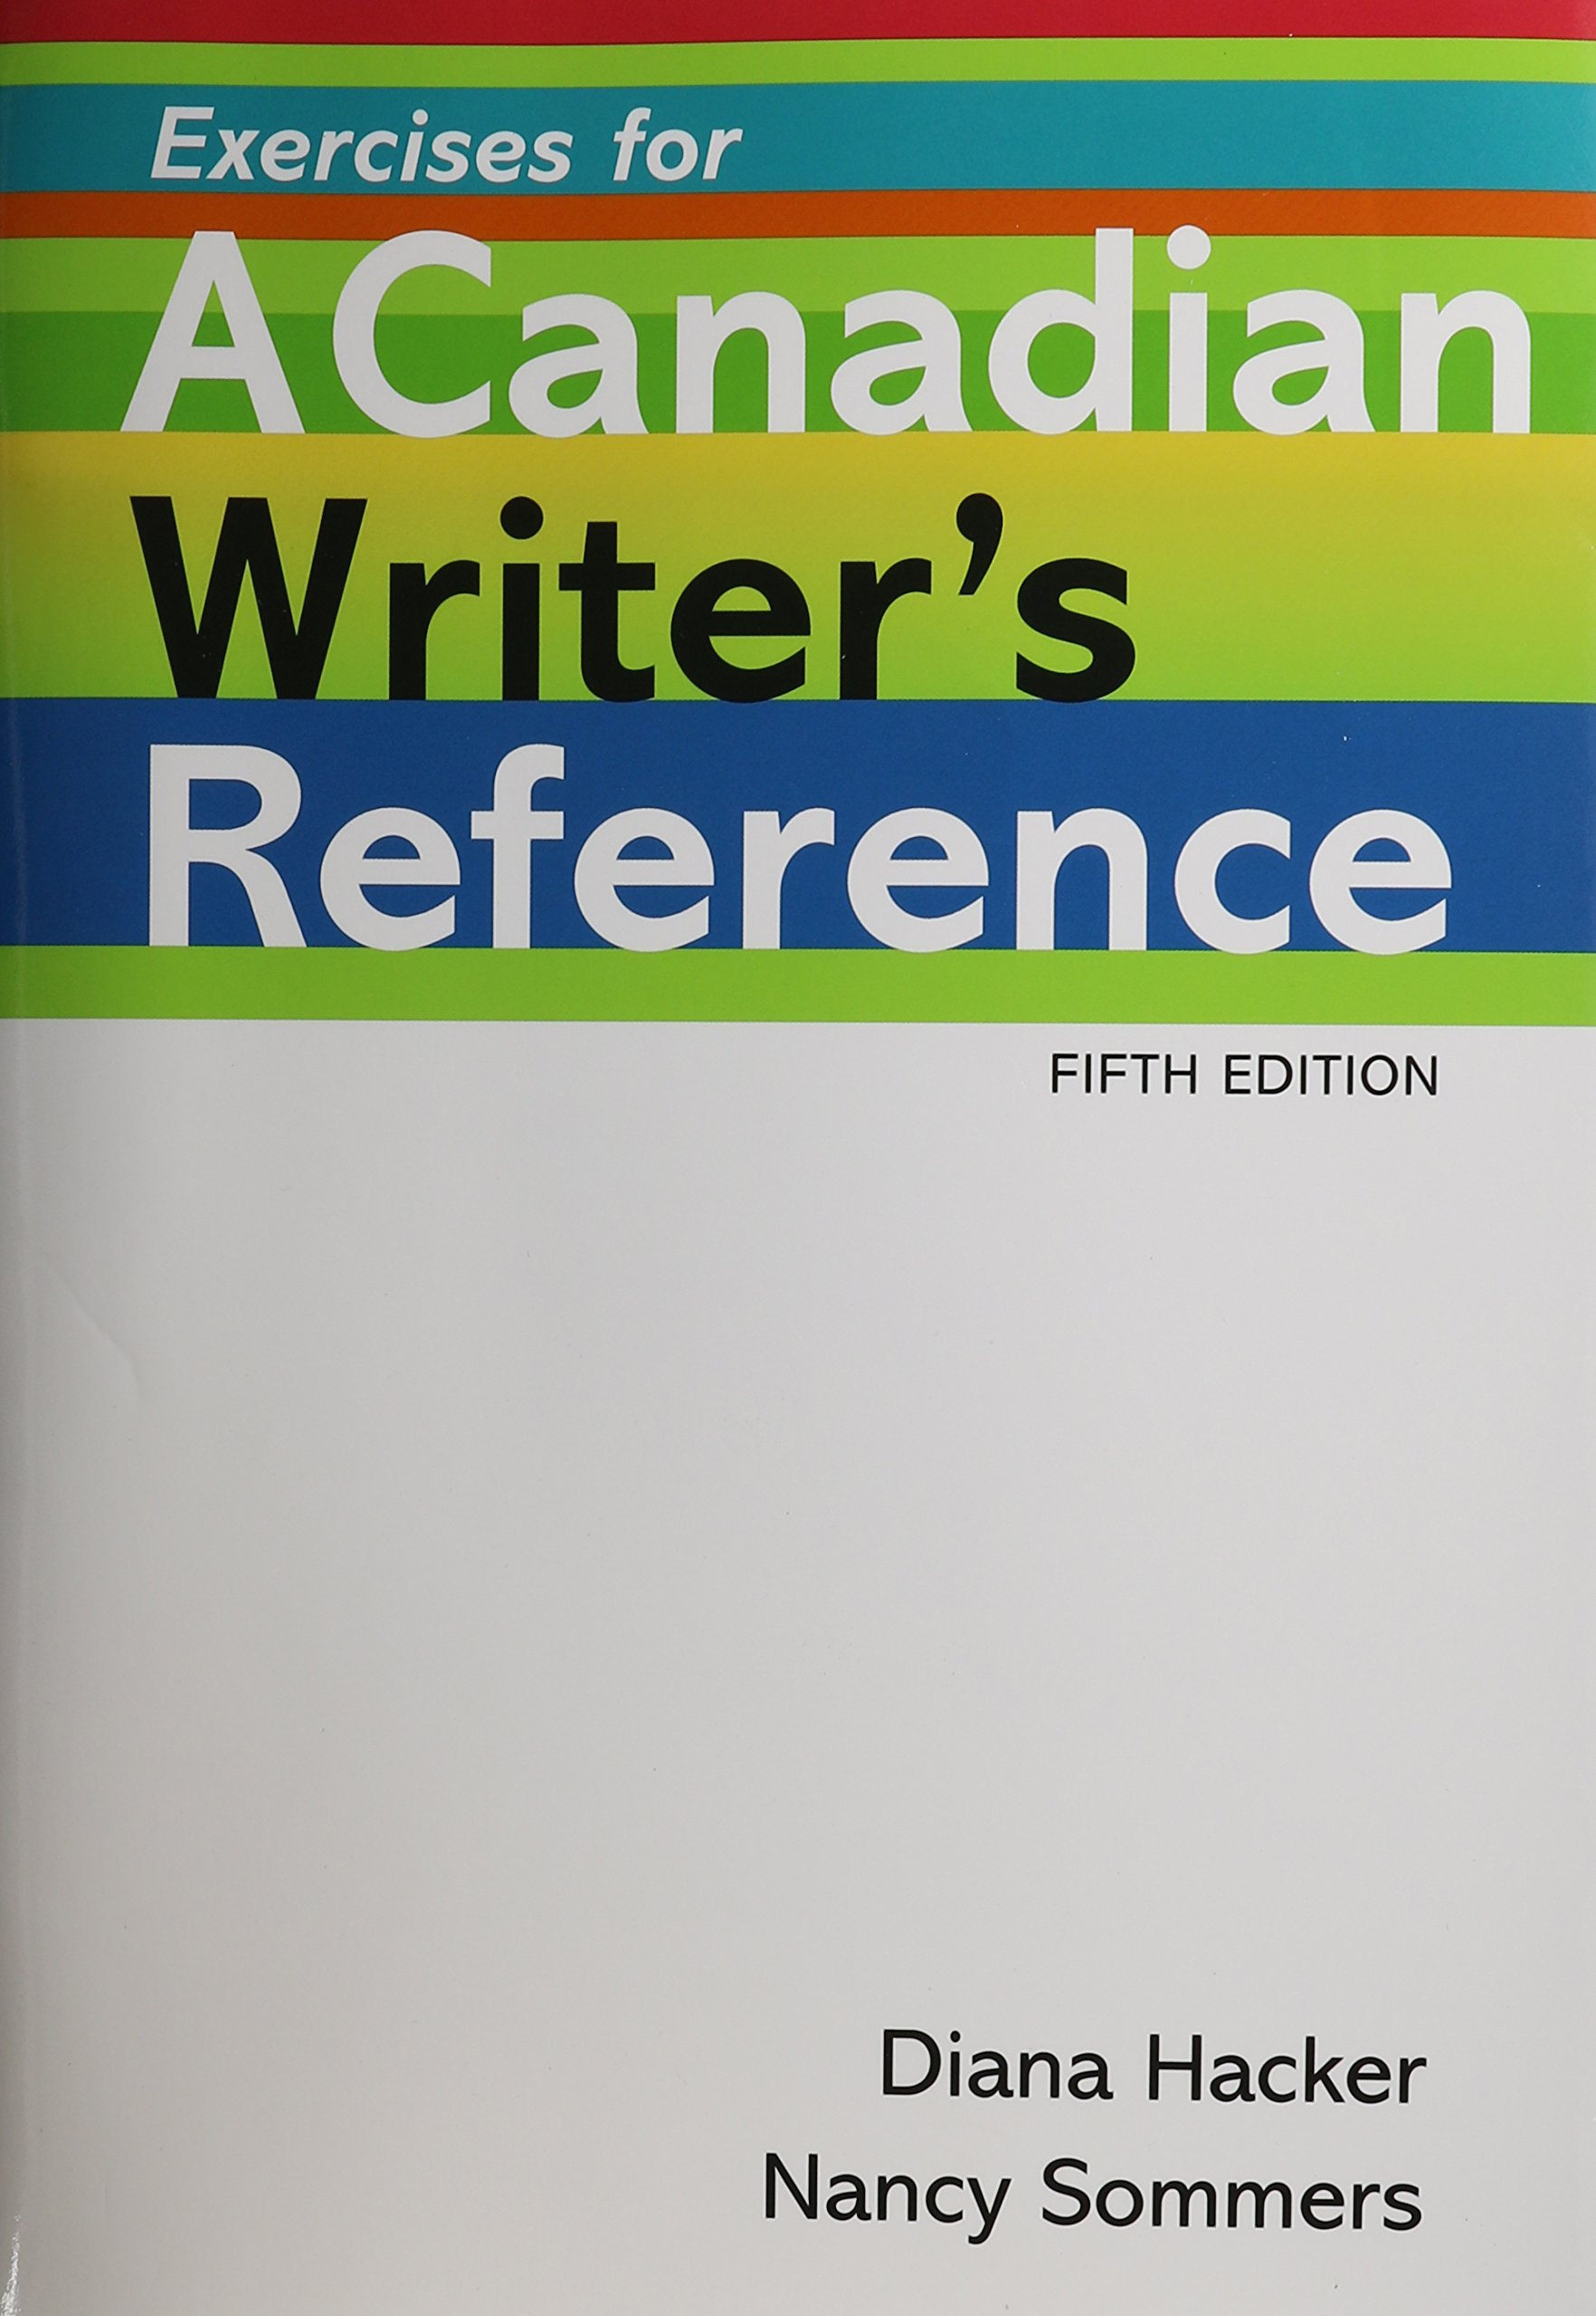 Canadian Writer's Reference 5th Edition & Ex [With Exercises for a Canadian  Writer's Reference 5/E]: Diana Hacker, Nancy Sommers: 9780312692599:  Creative ...